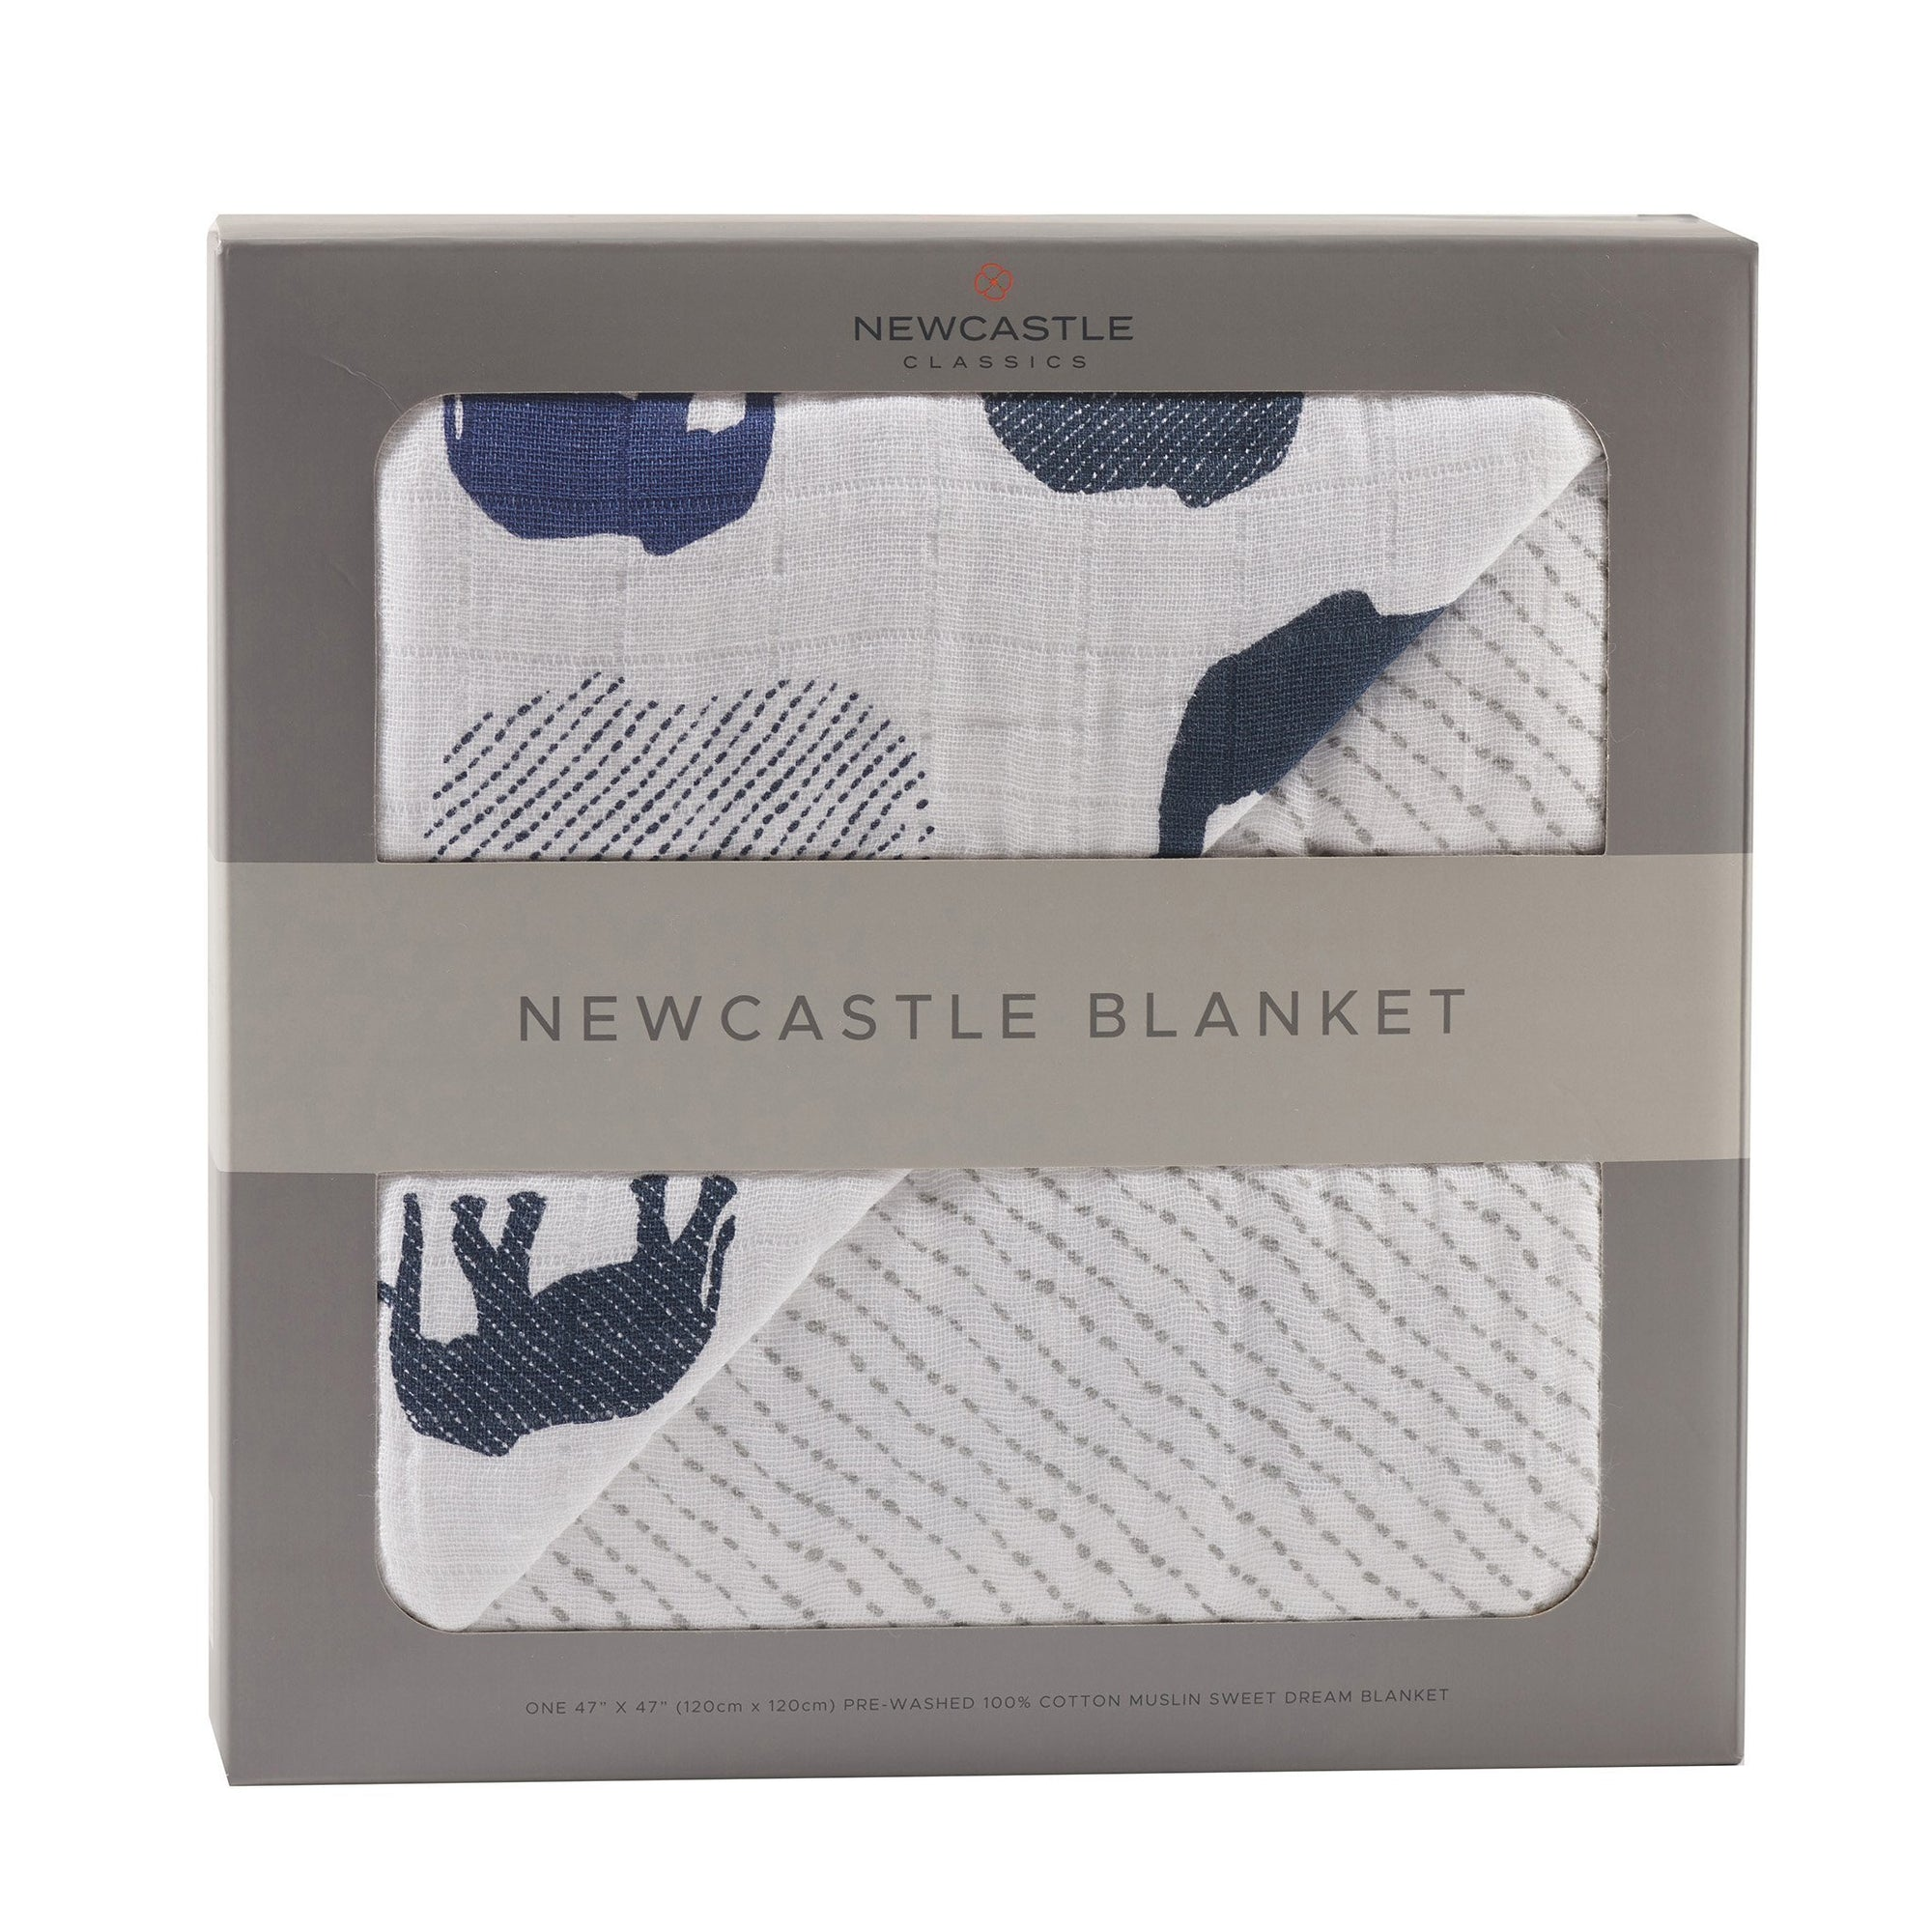 Blue Elephants & Spotted Wave Newcastle Blanket by Newcastle Classics - Baby World Inc